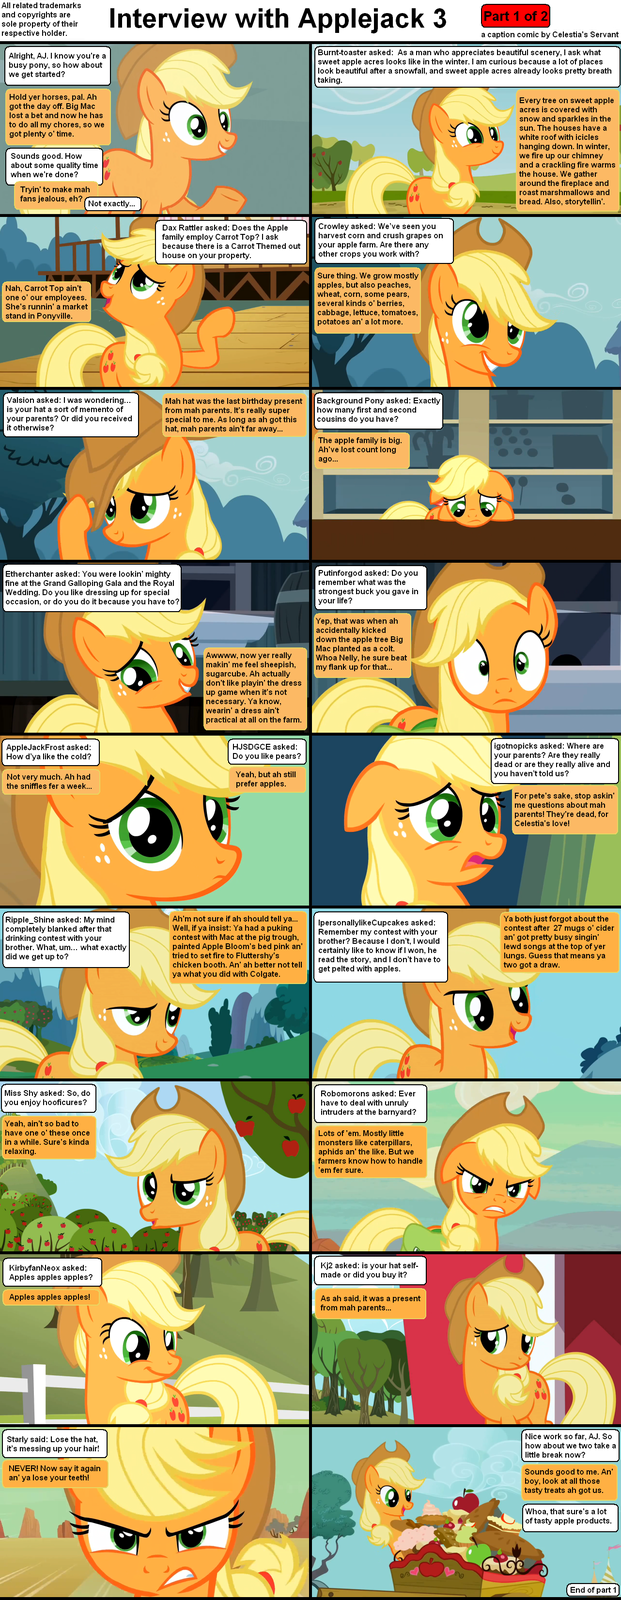 Interview with Applejack 3